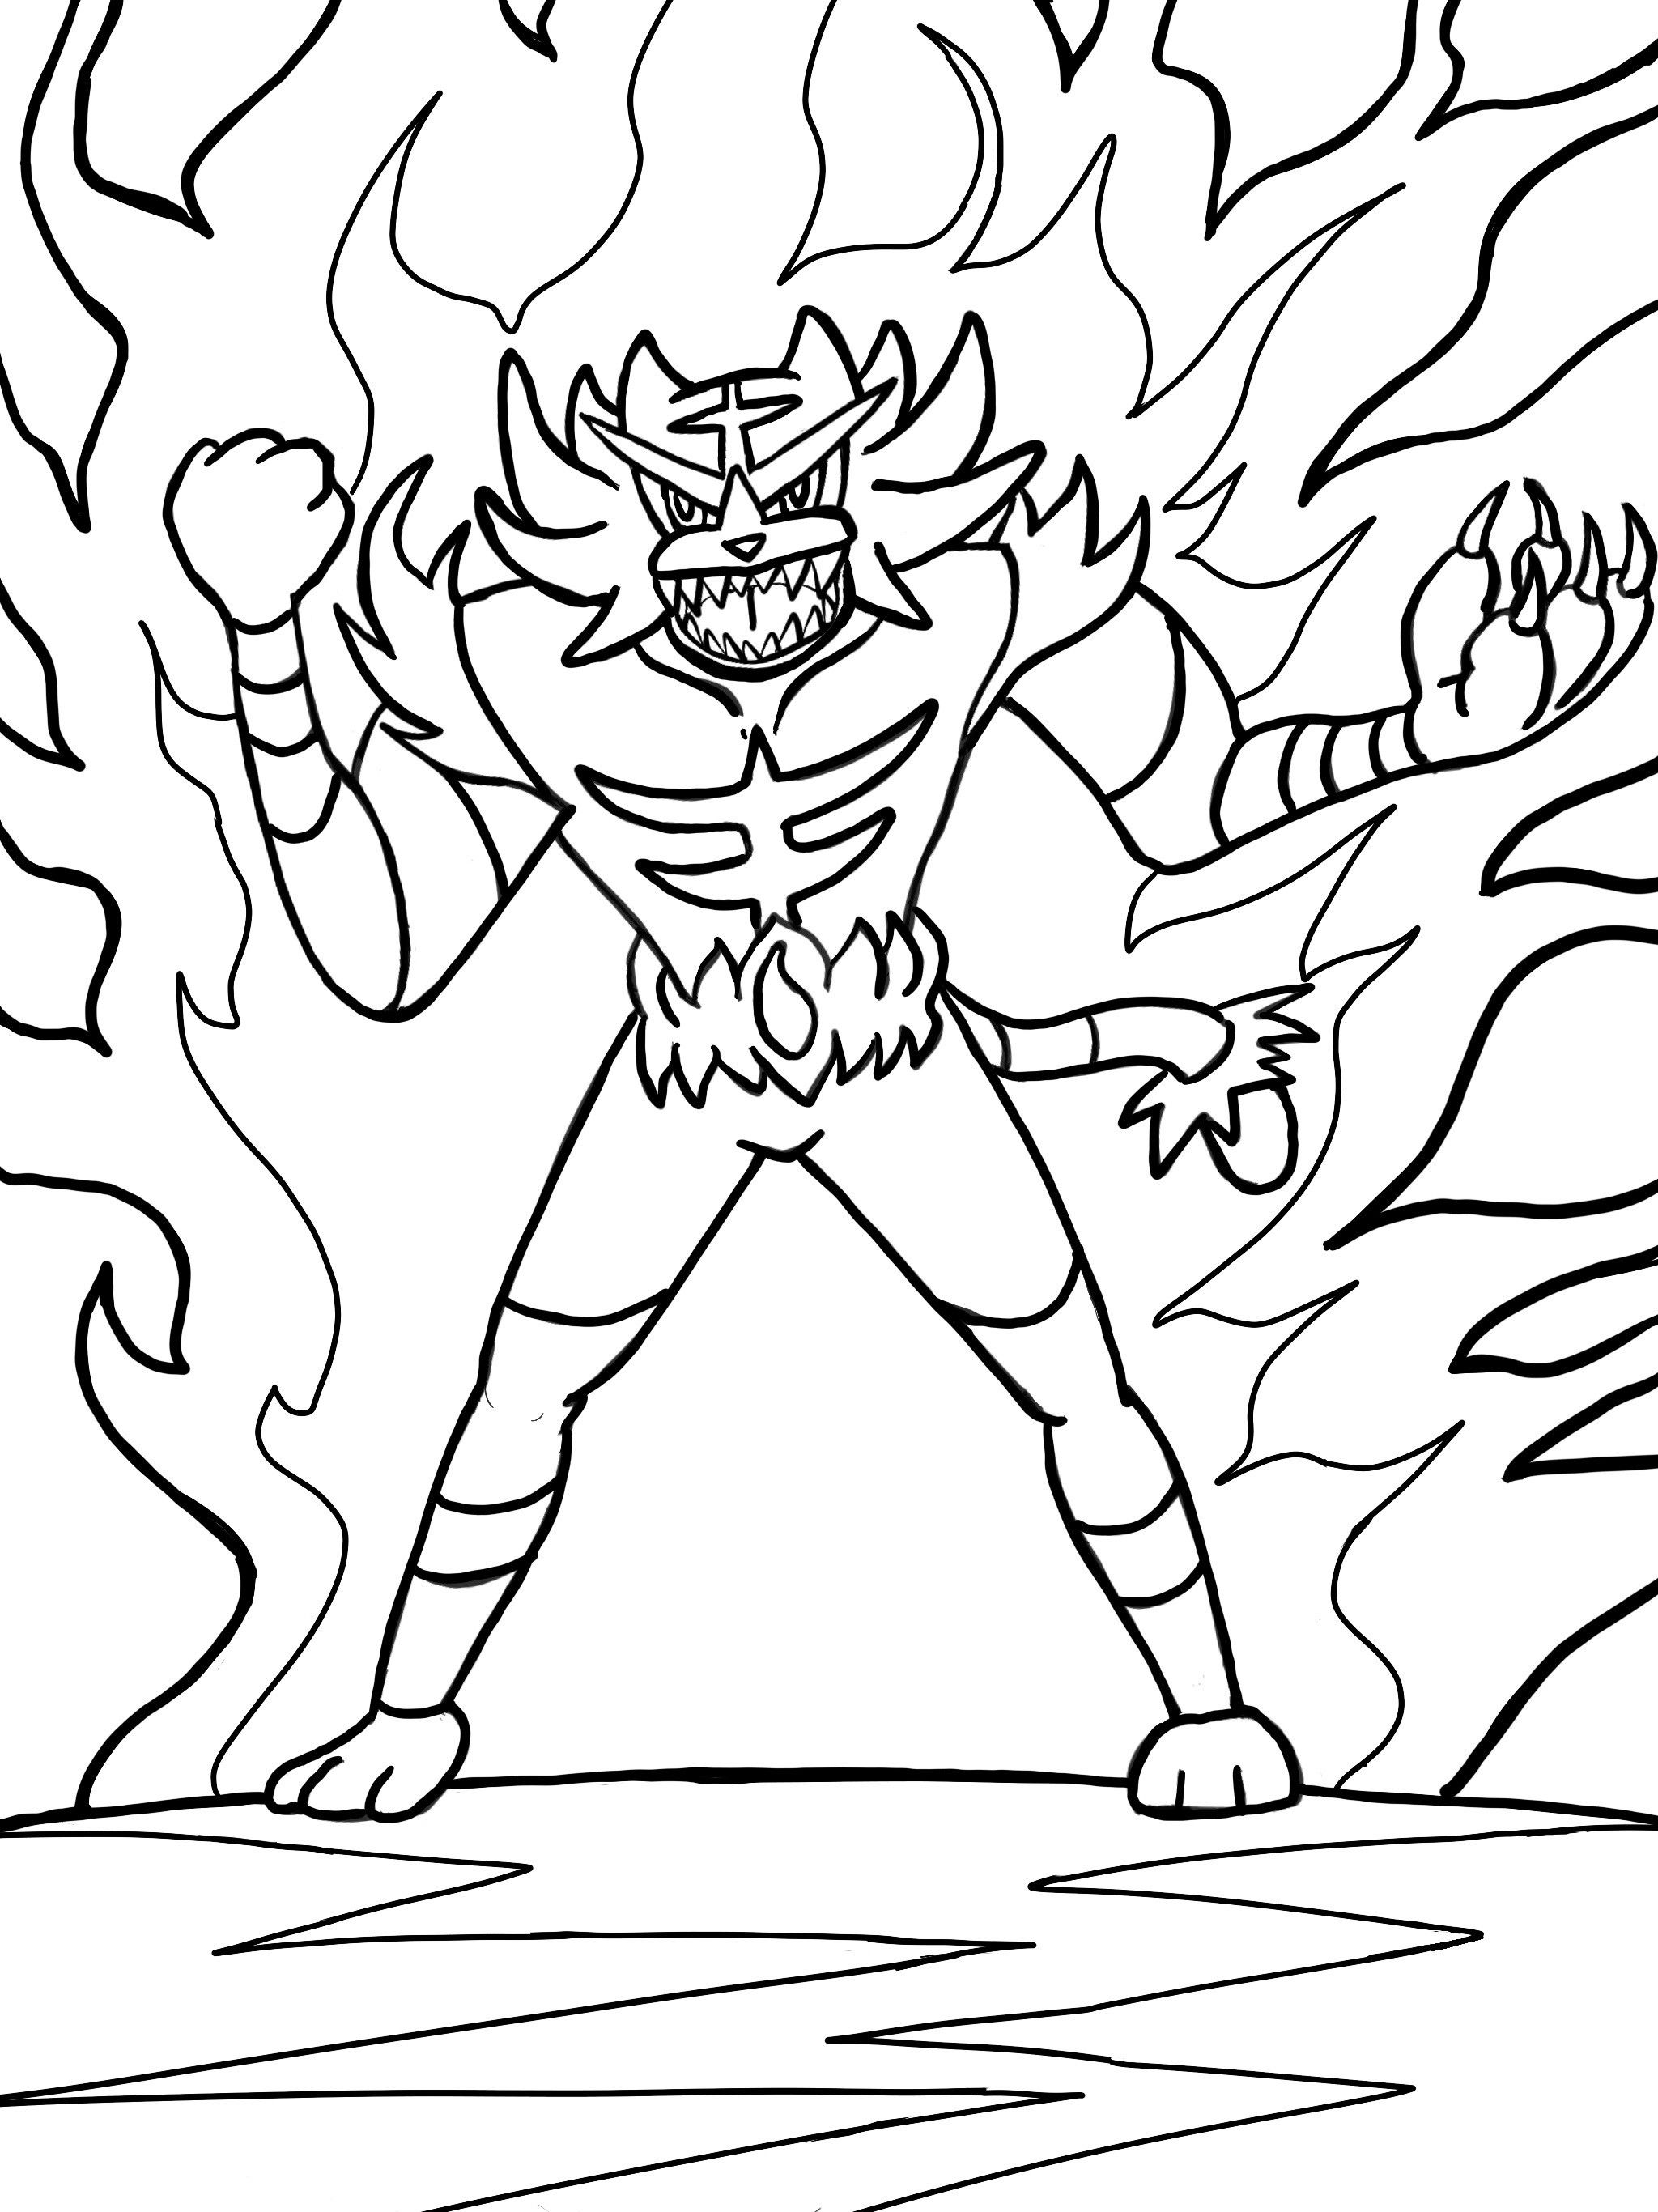 Pokemon Coloring Pages Incineroar From the thousands of